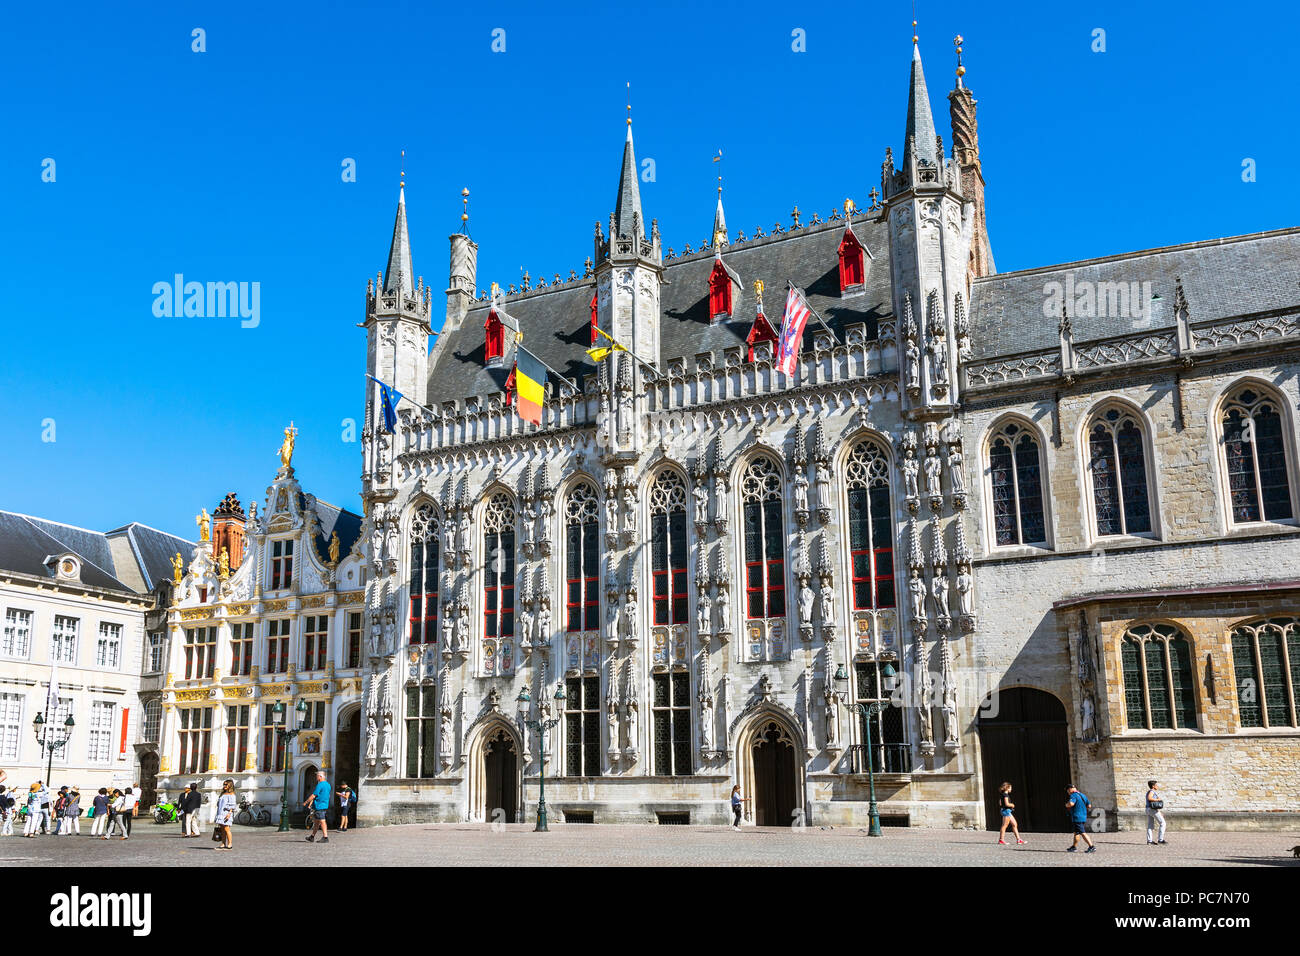 Burg Square and the city or town hall, Stadhuis city hall, Stadsbestuur Bruge, with tourists site seeing, Bruges, Belgium - Stock Image